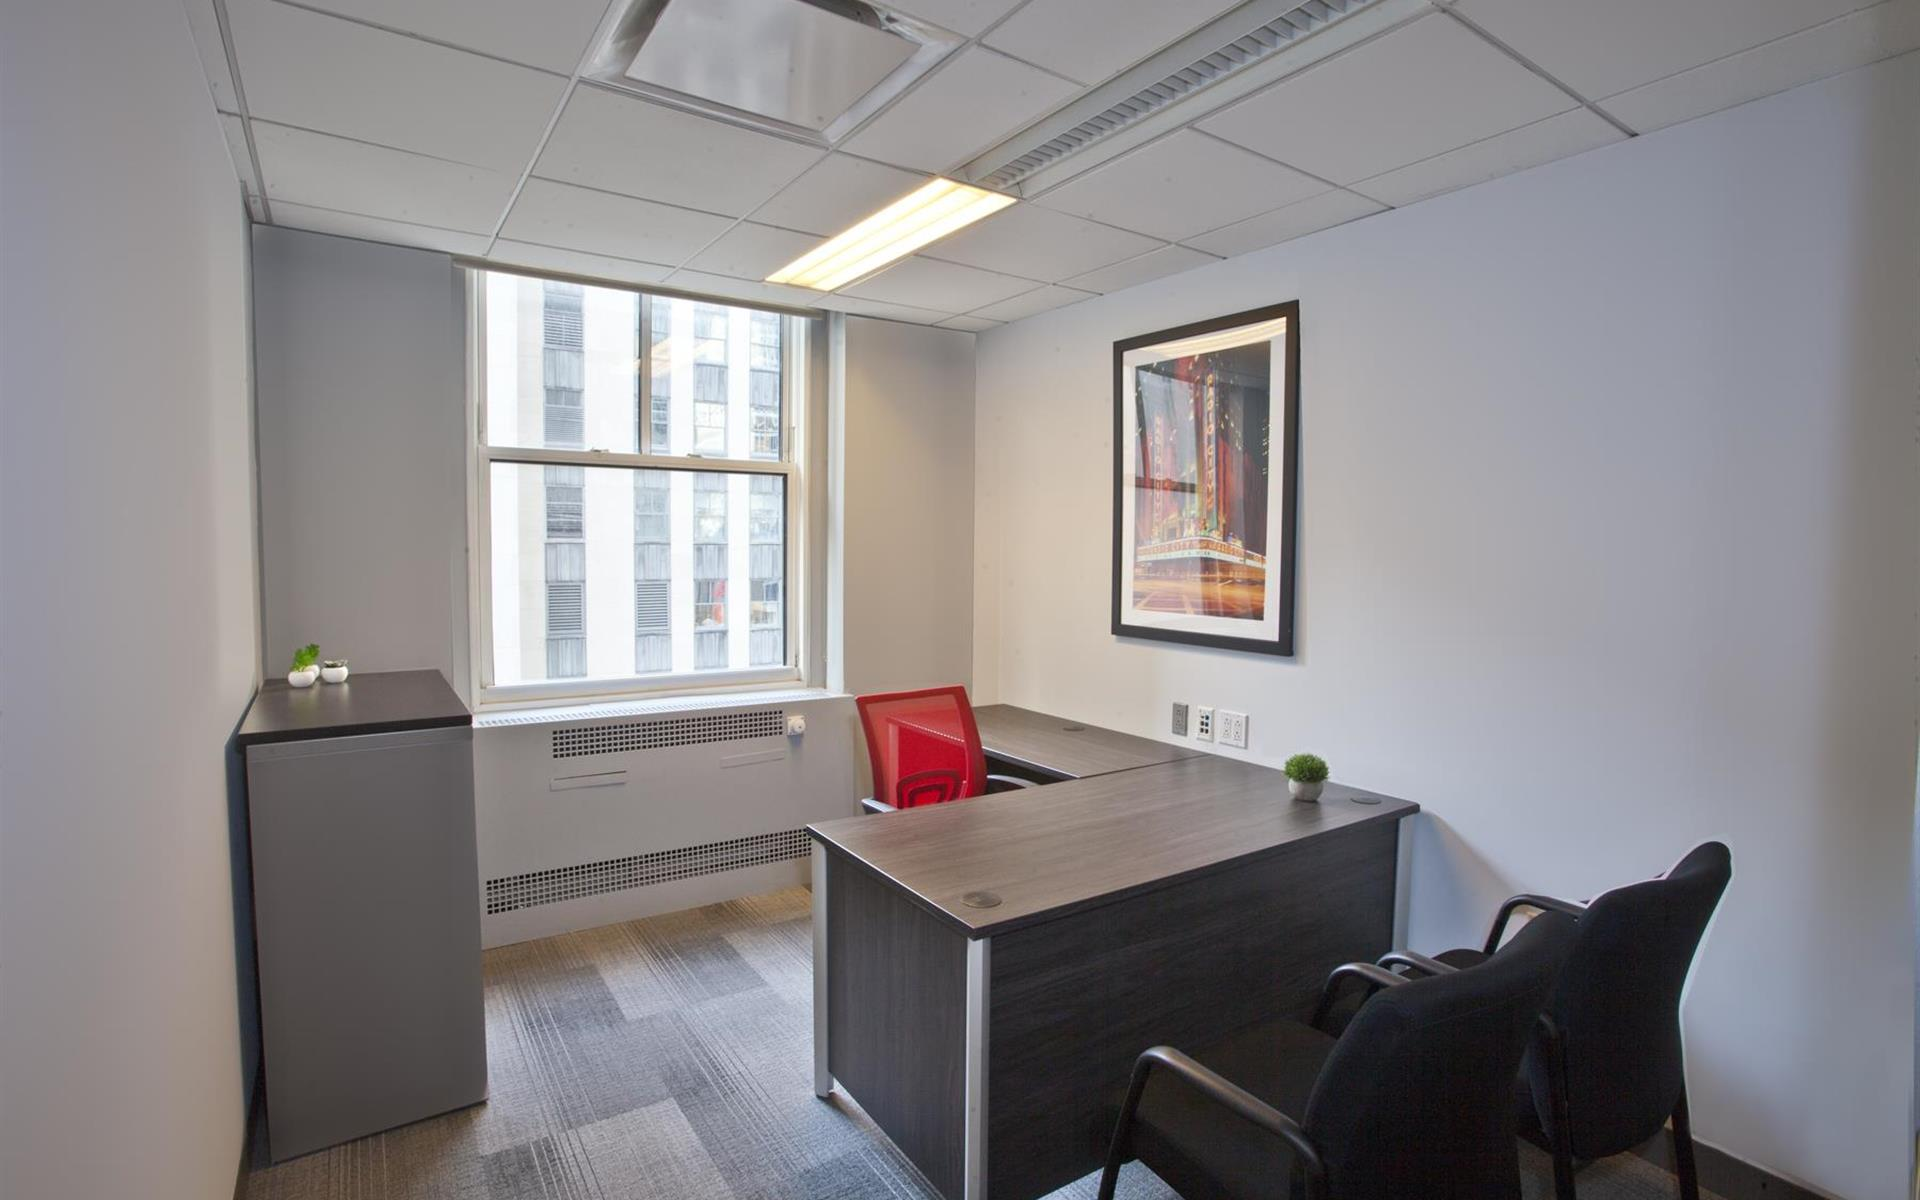 NYC Office Suites - 10 Grand Central - 1270 Avenue of the Americas